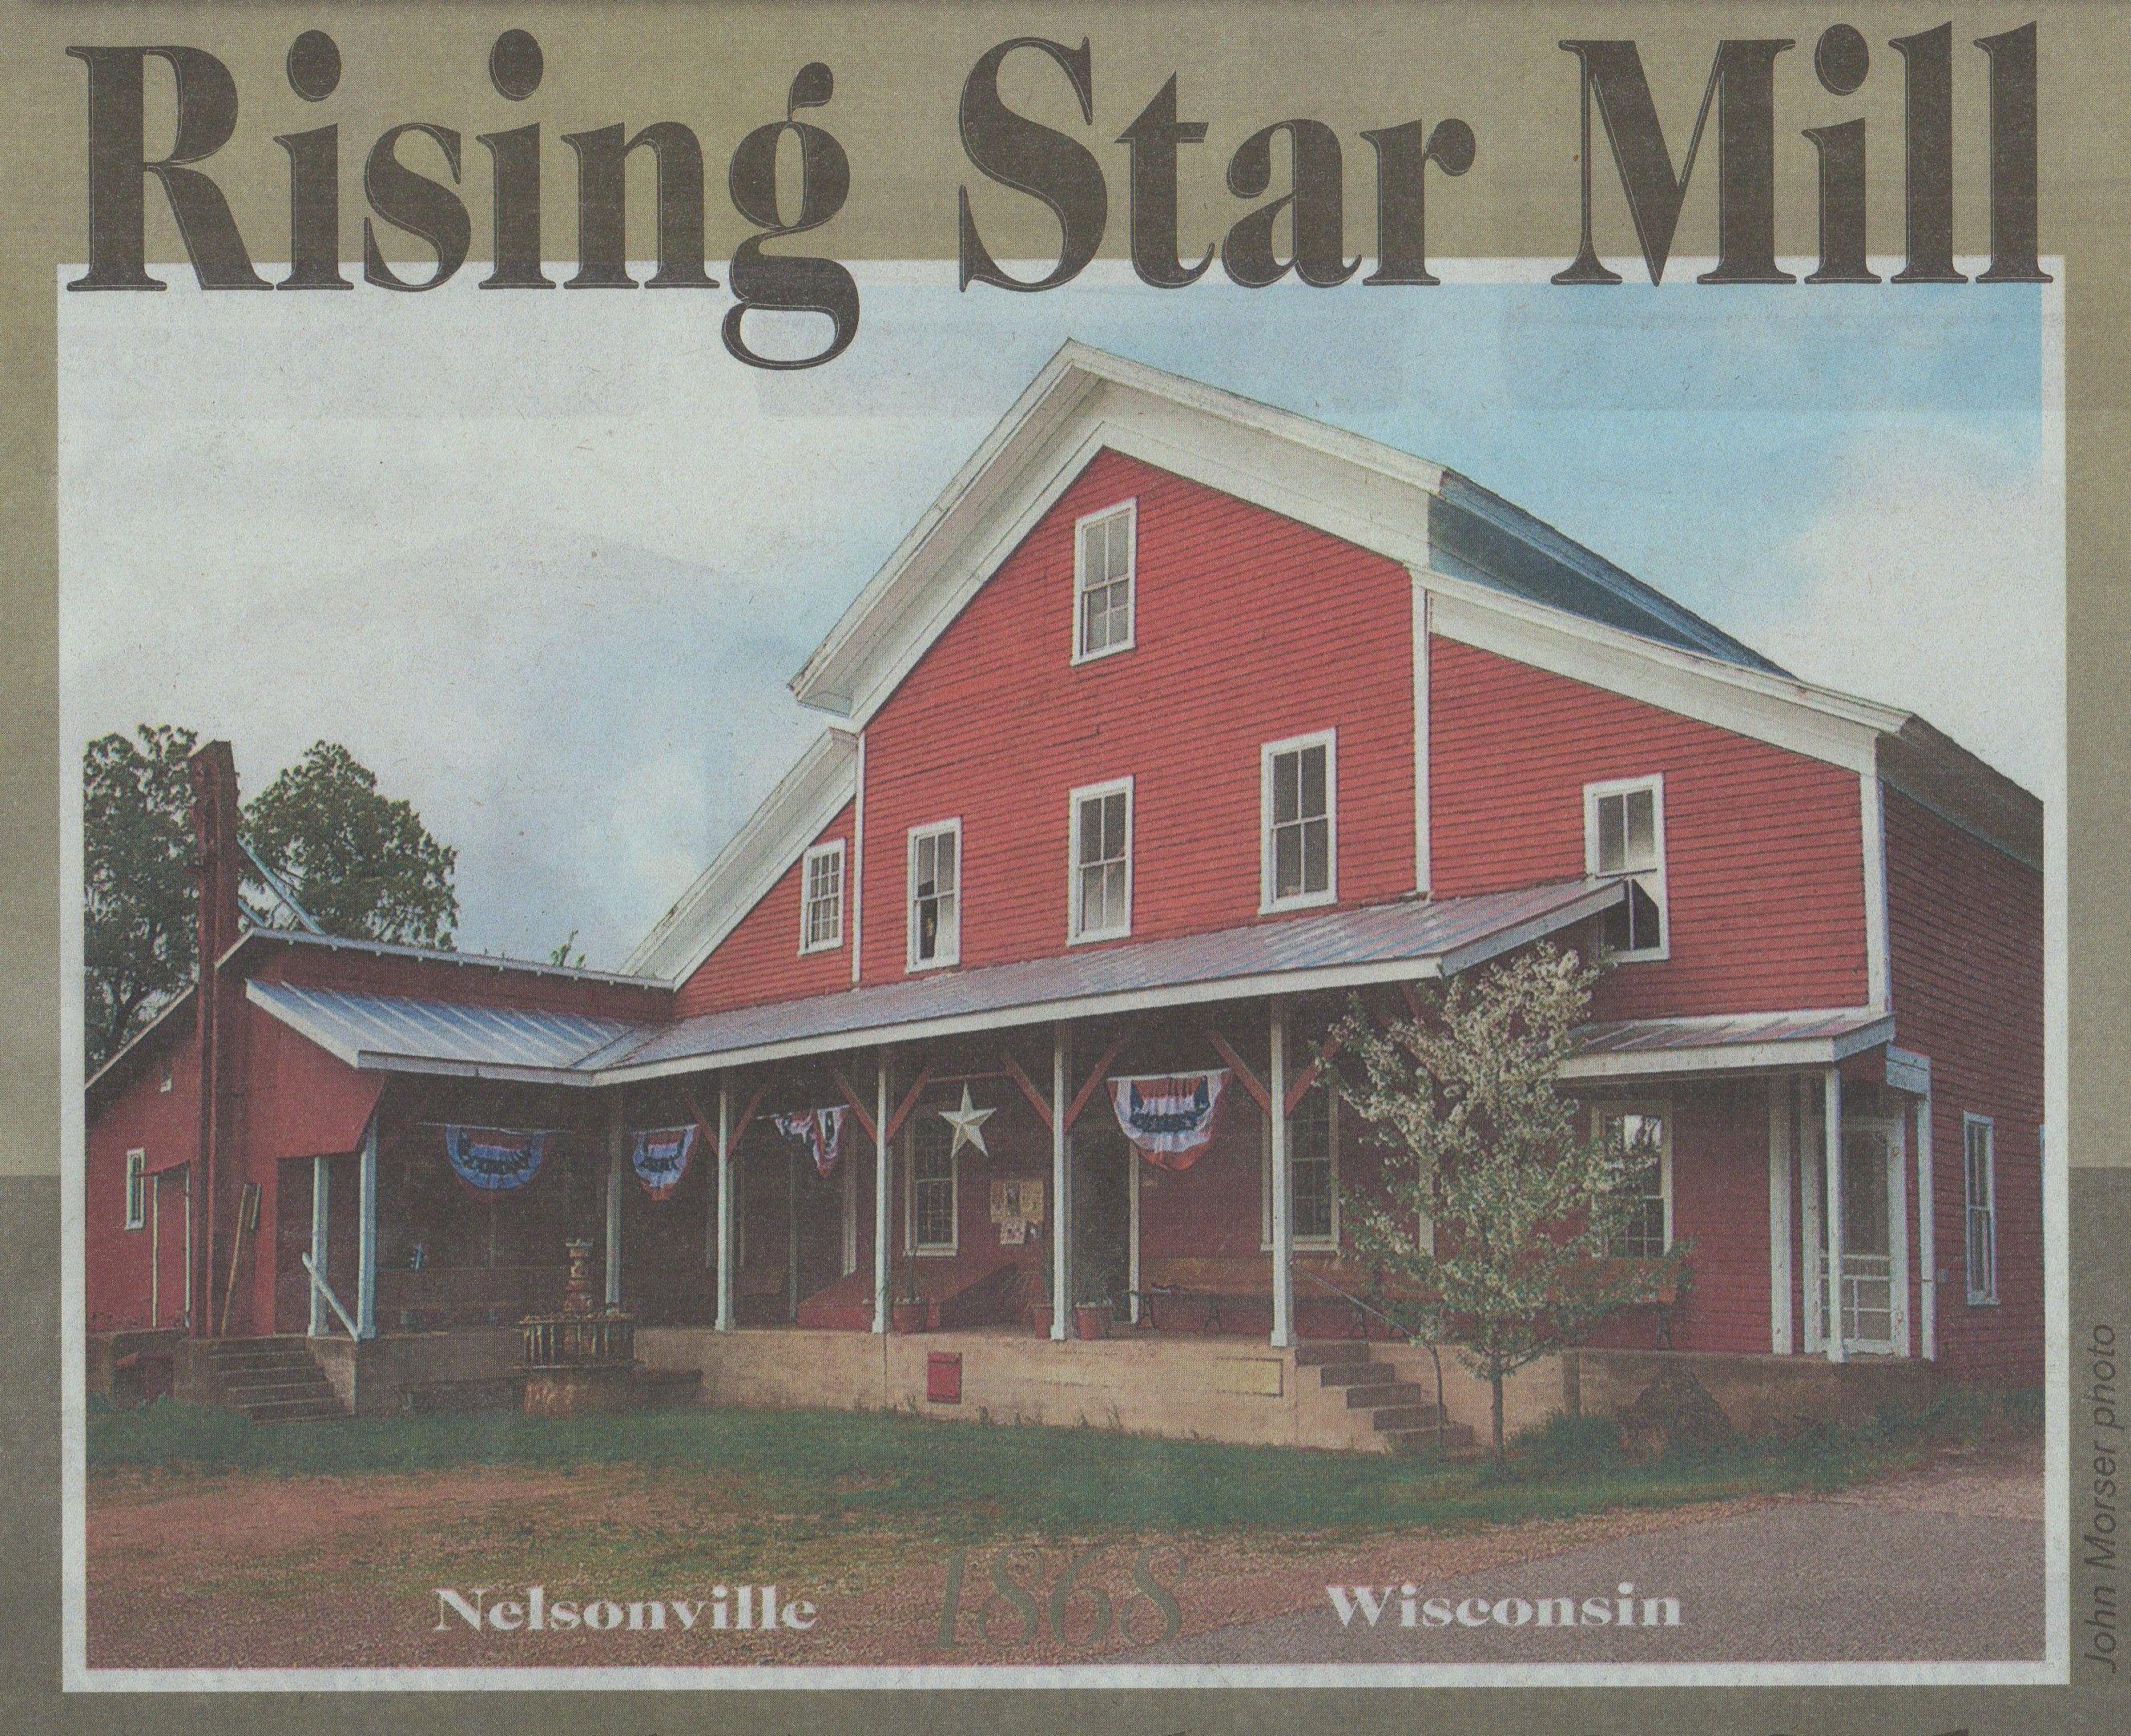 The Jackson Milling Company now called the Rising Star Mill in Nelsonville Wisconsin, U.S.A.